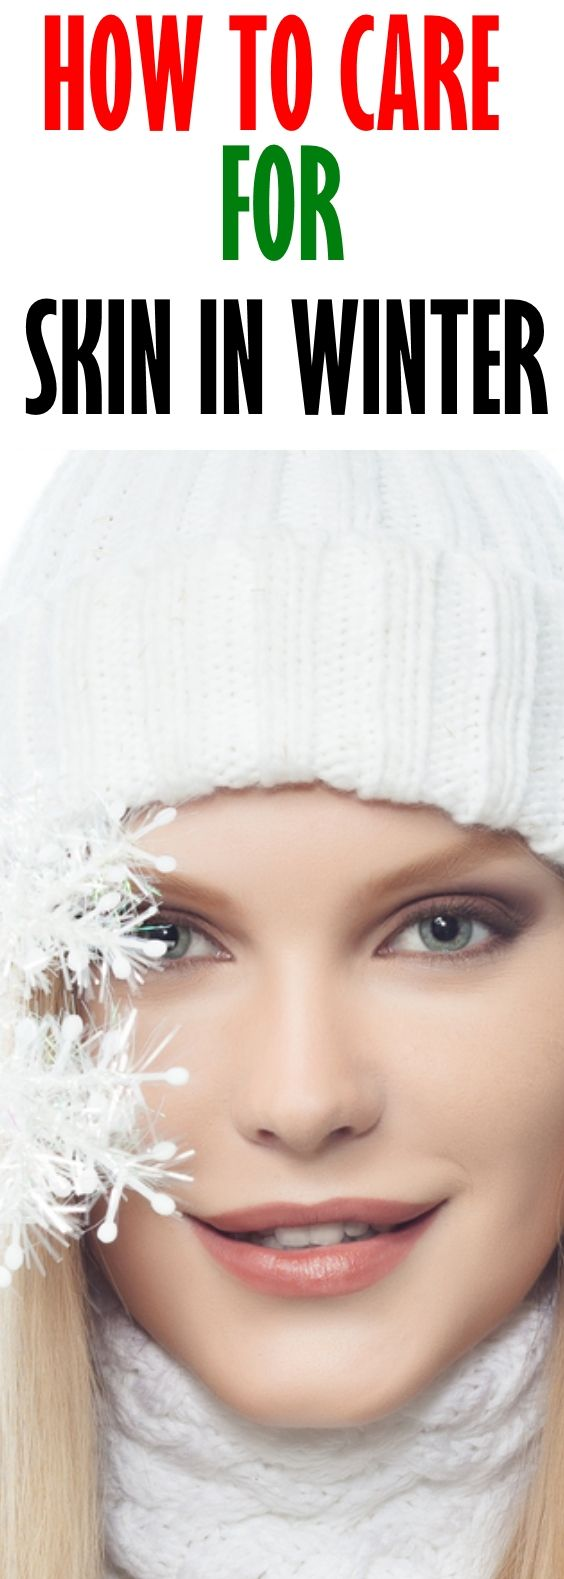 How To Care For Skin in Winter